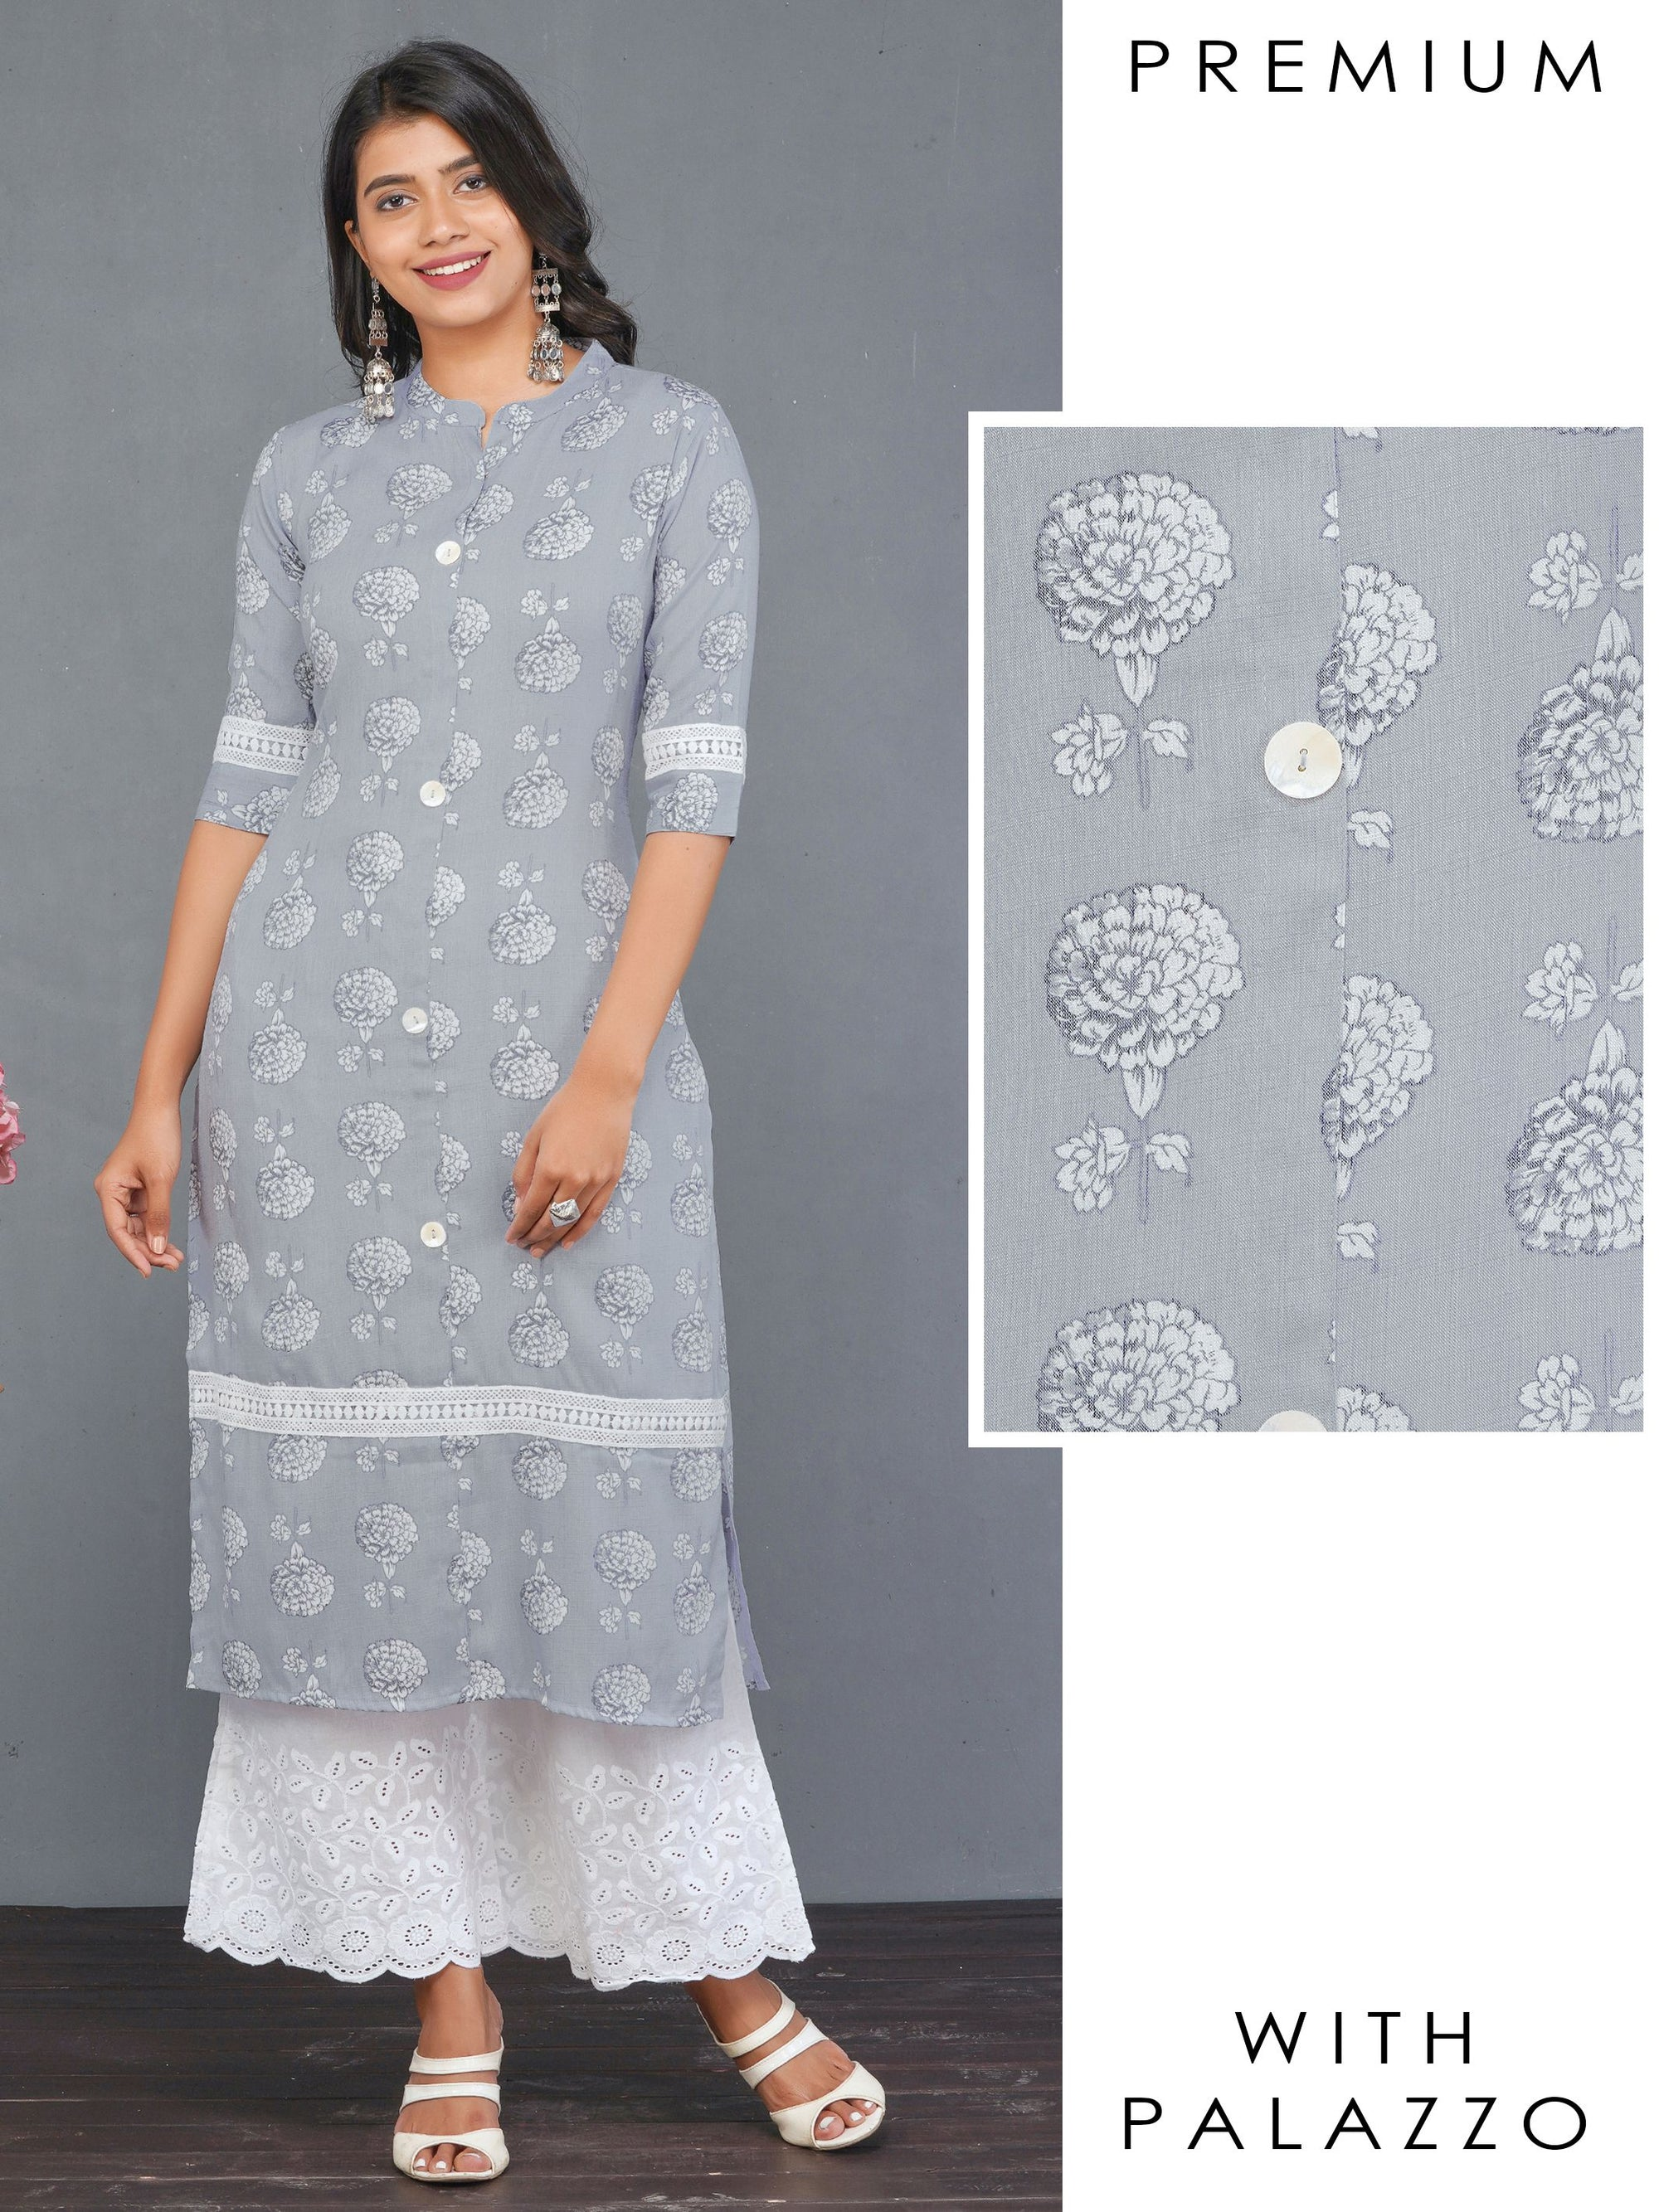 Floral Printed Crochet Lace Kurti & Scallop Embroidered Palazzo Set – Grey